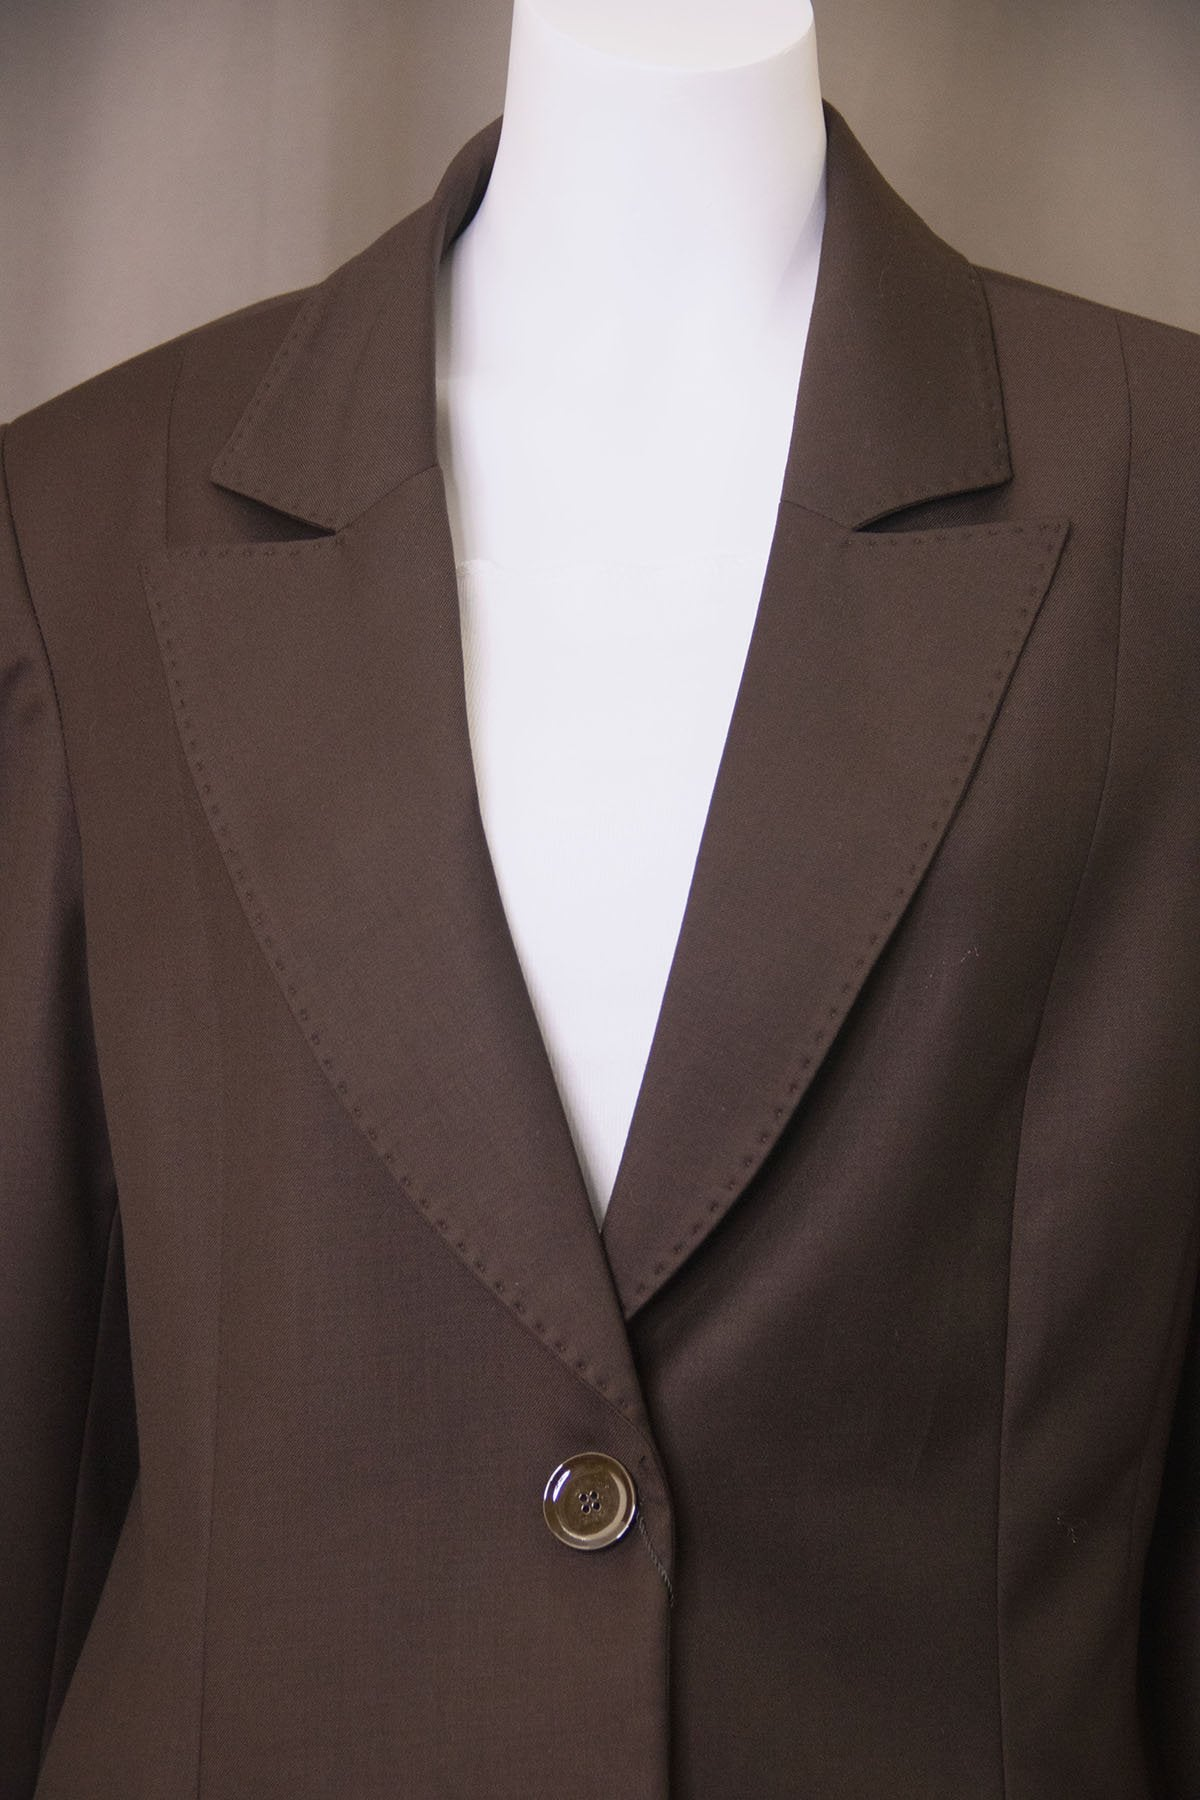 LADIES BROWN SUIT BUTIK DAYI TURKEY